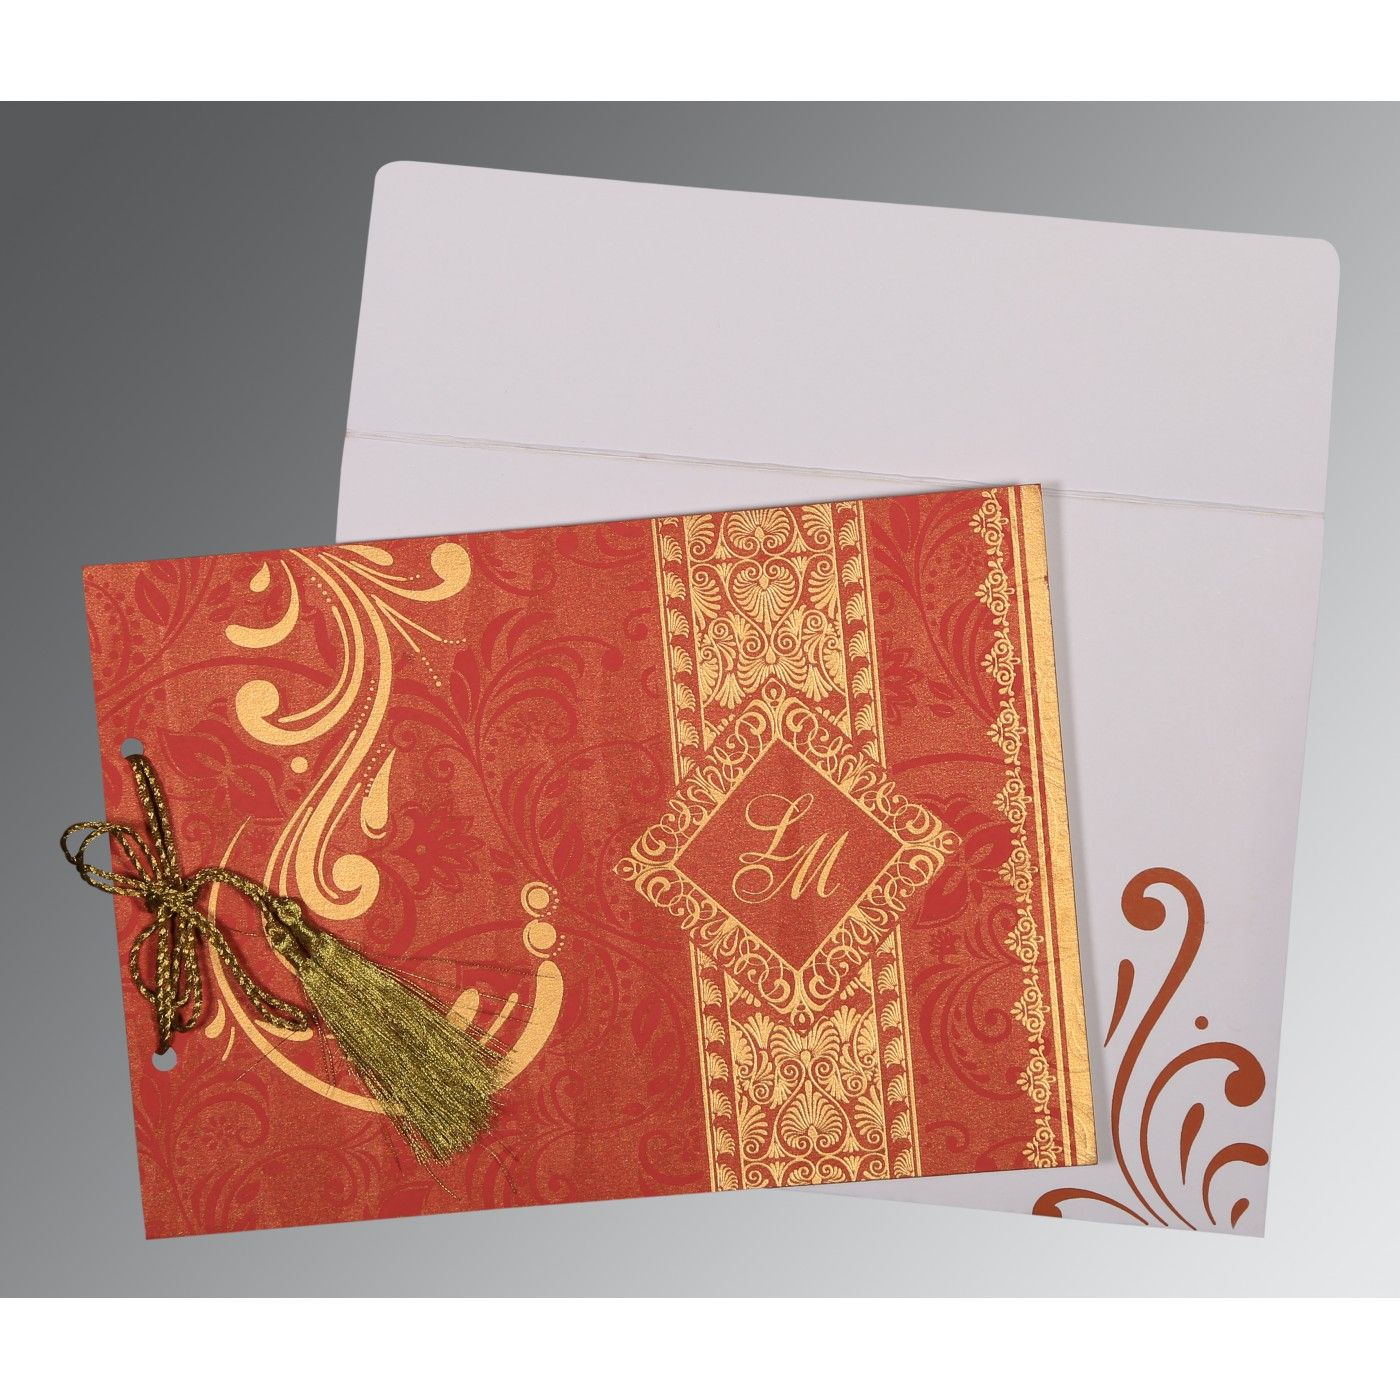 BURNT ORANGE SHIMMERY SCREEN PRINTED WEDDING CARD : CRU-8223C - IndianWeddingCards